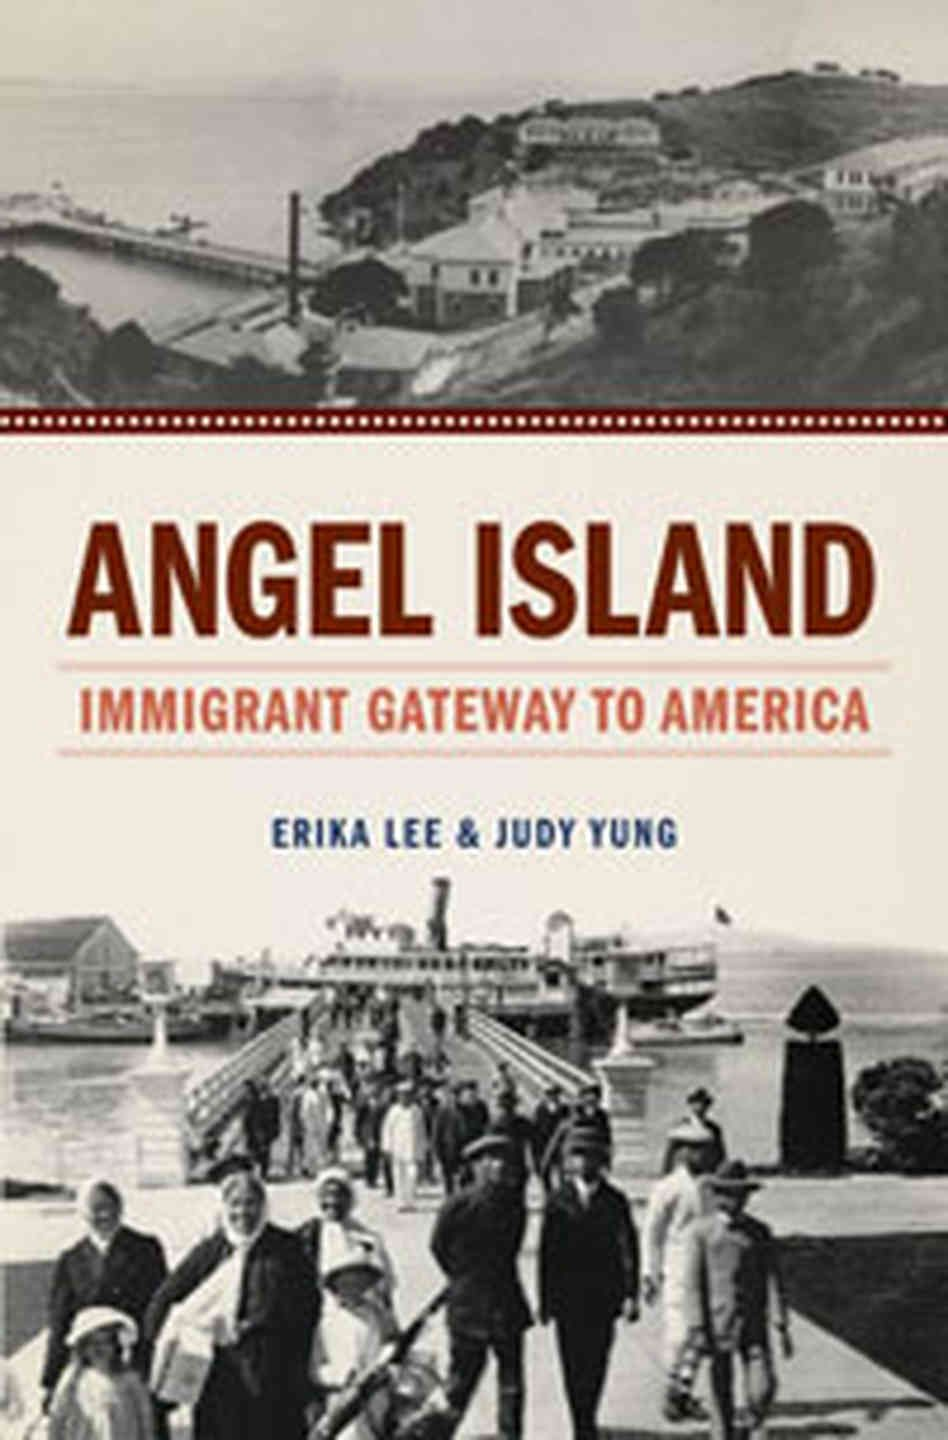 a difference between ellis island and angel island was that